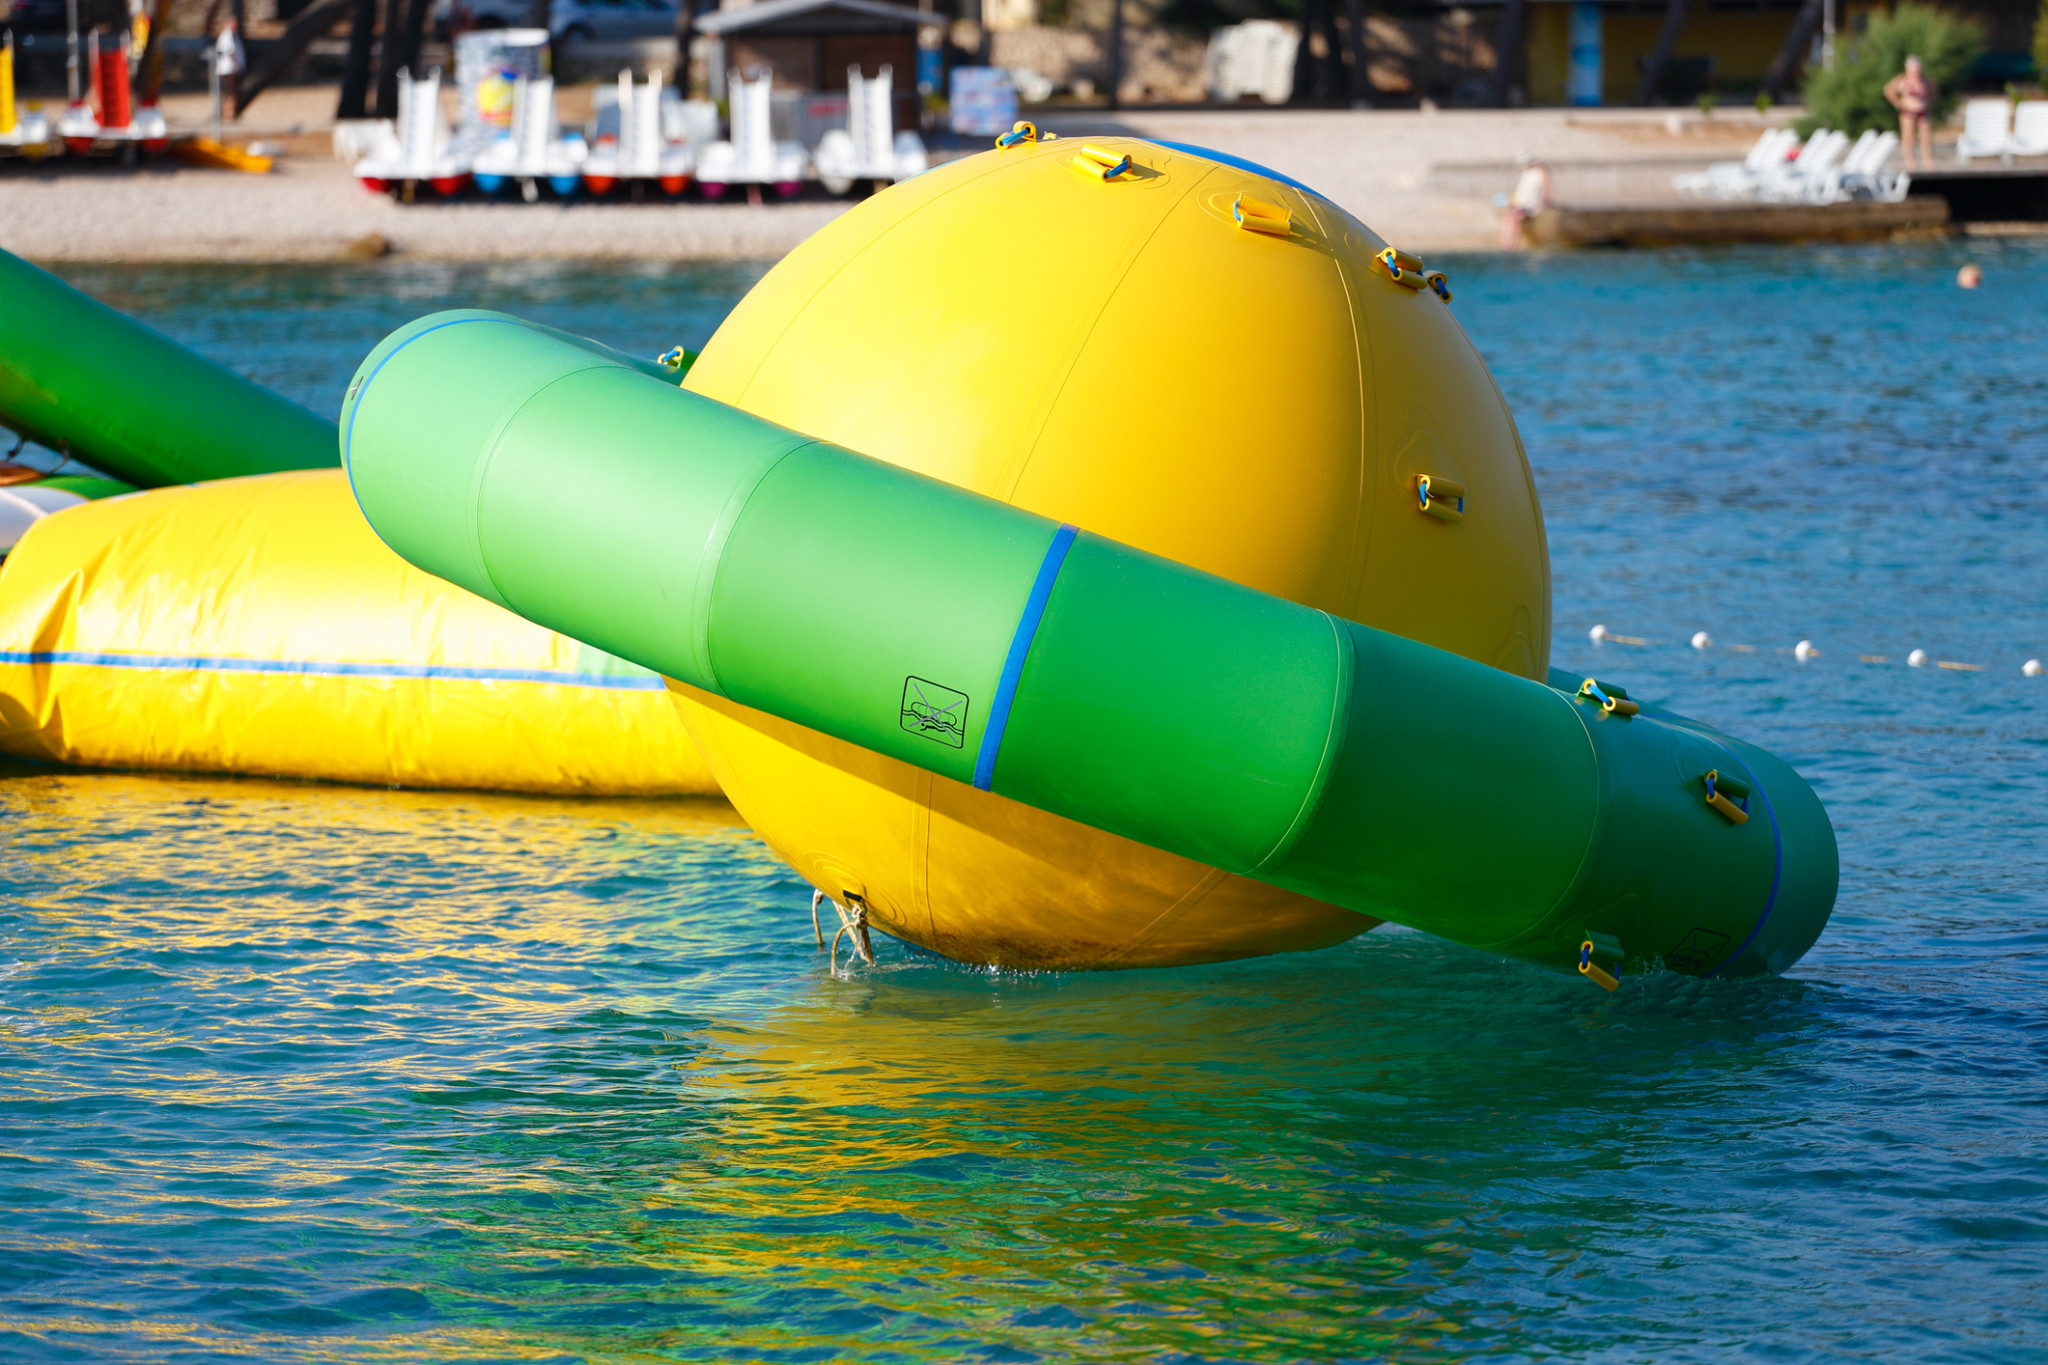 Insurance For Floating Obstacle Courses